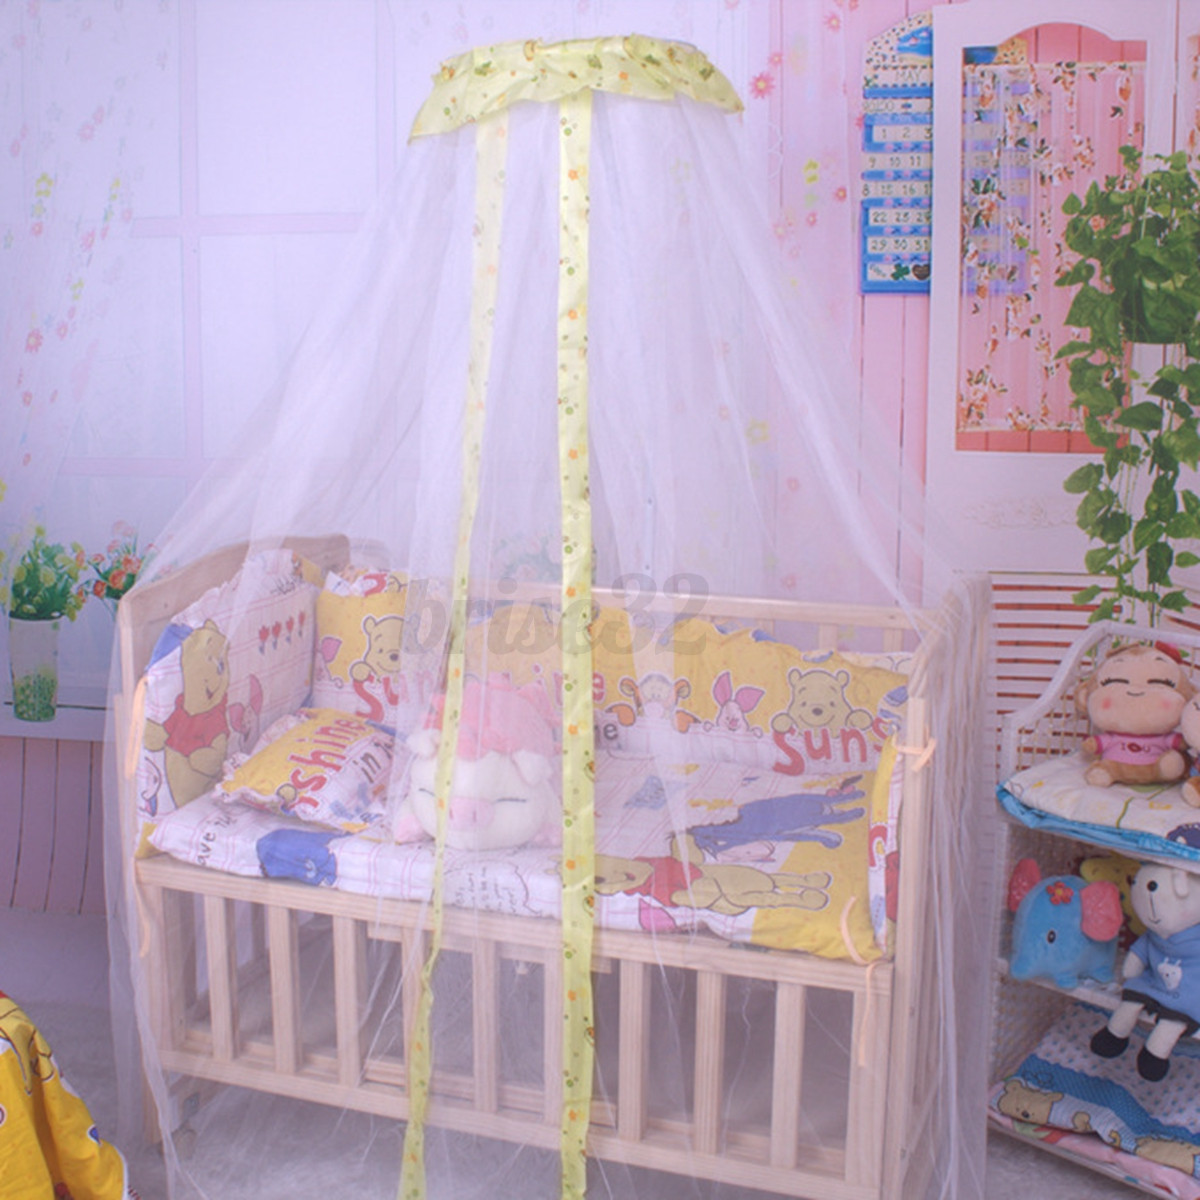 Baby Canopy For Crib: Baby Infant Nursery Mosquito Bedding Crib Canopy Net